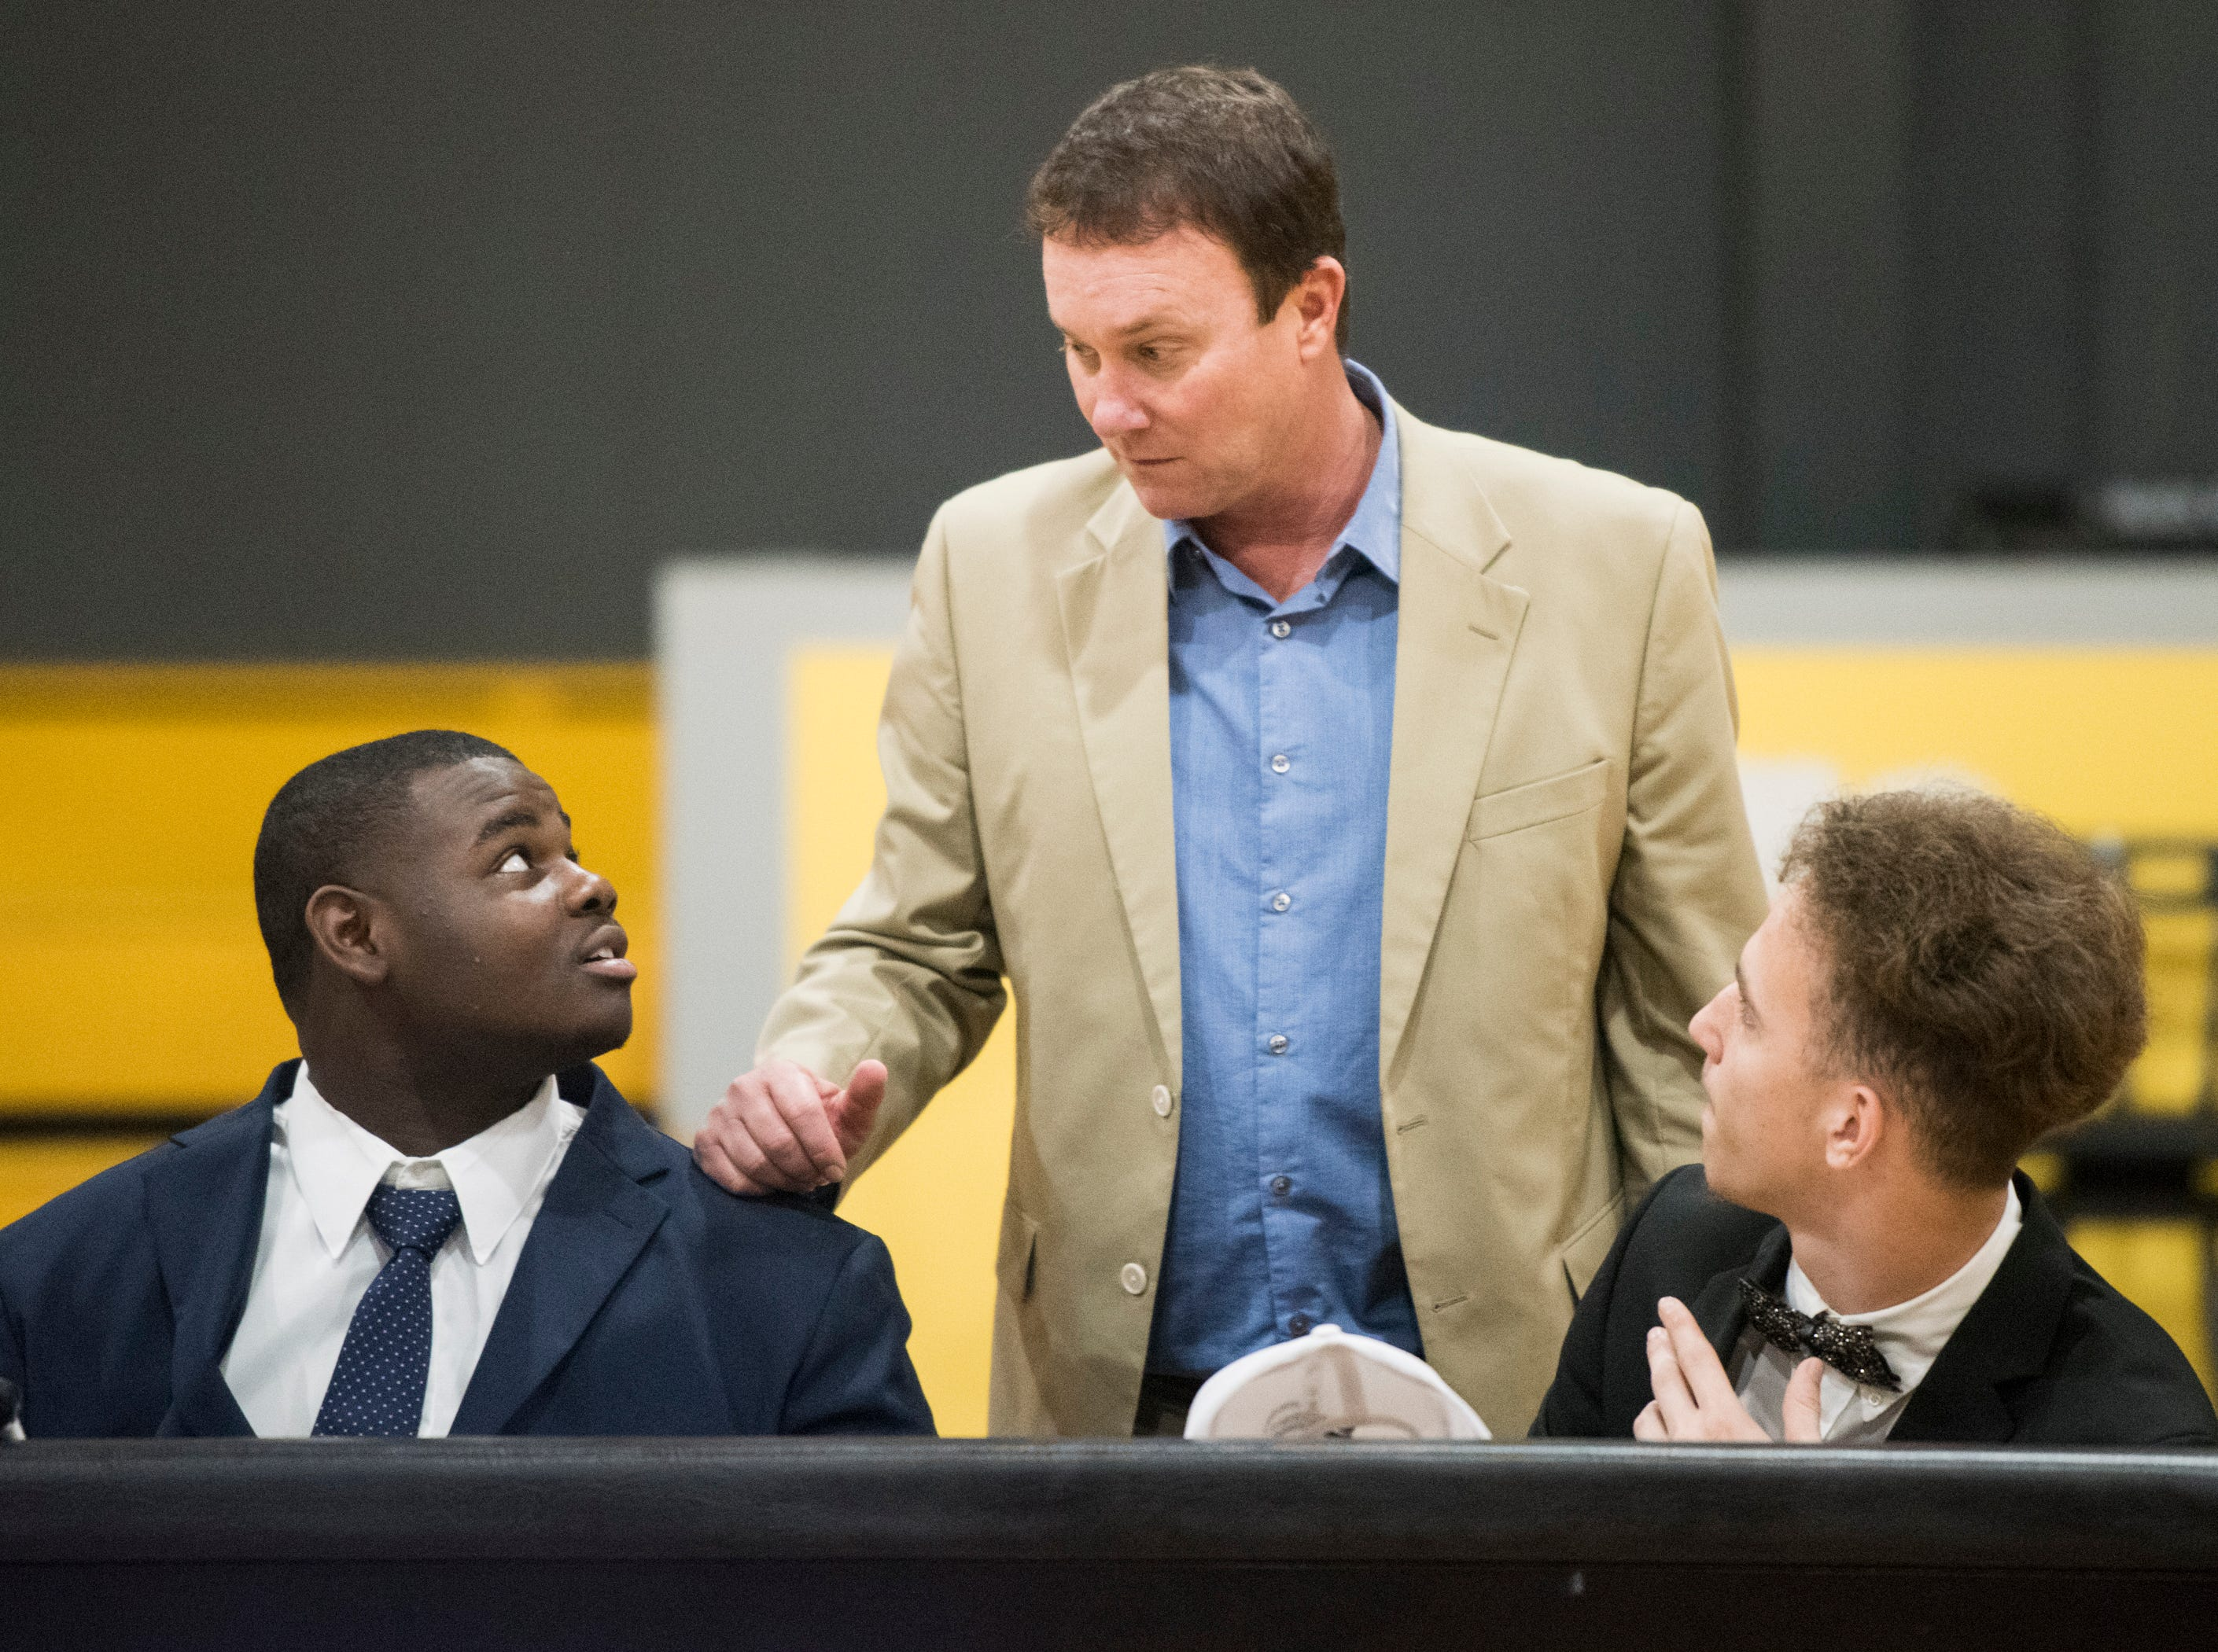 Coach Booby Carr talks with his players during signing day at Autauga Academy Prattville, Ala., on Wednesday, Feb. 6, 2019.